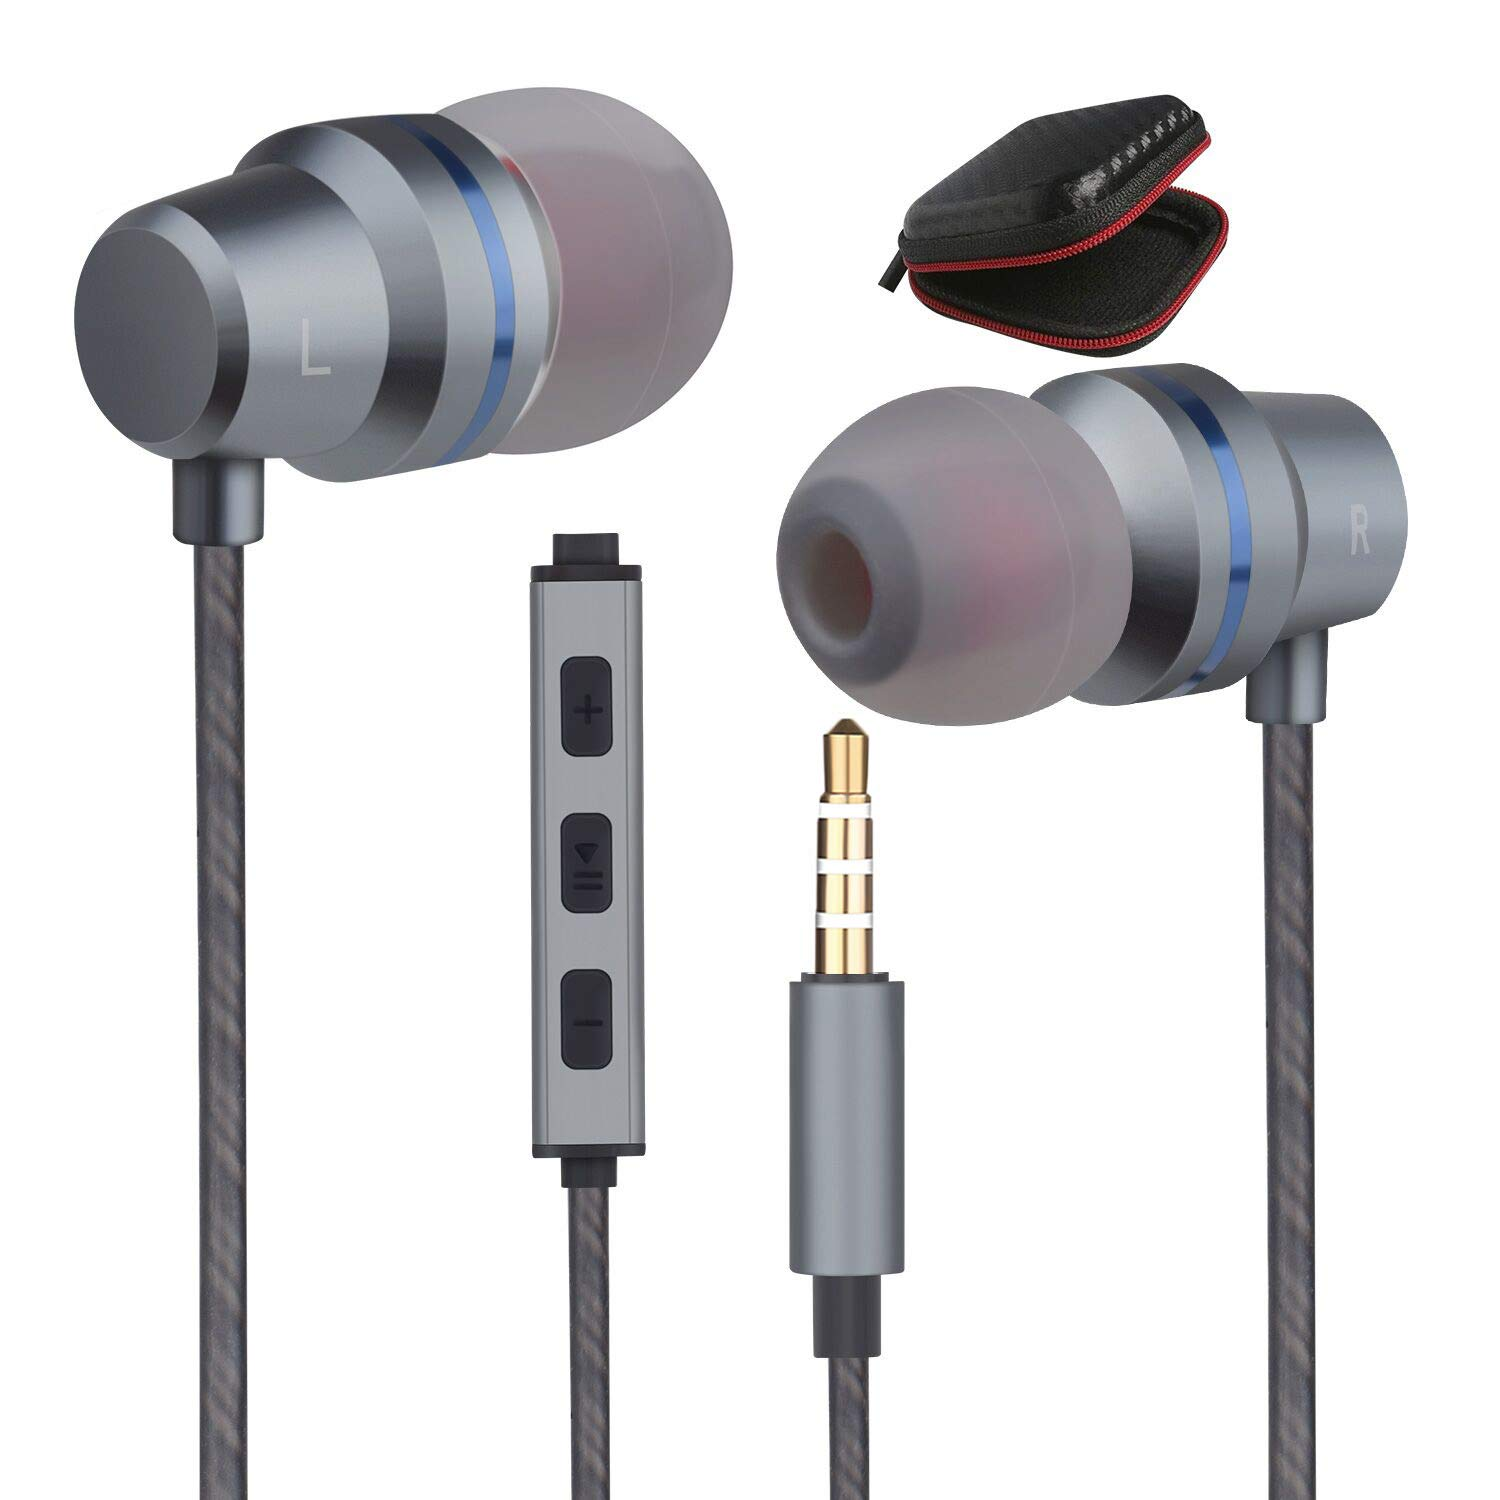 Earbuds Wired Headphones Microphone in Ear Earphones Stereo Mic Ear Buds Volume Control Music Headsets Compatible Android Smart Phones iPhone iPad Samsung Noise Cancelling 3.5mm Devices Headphones